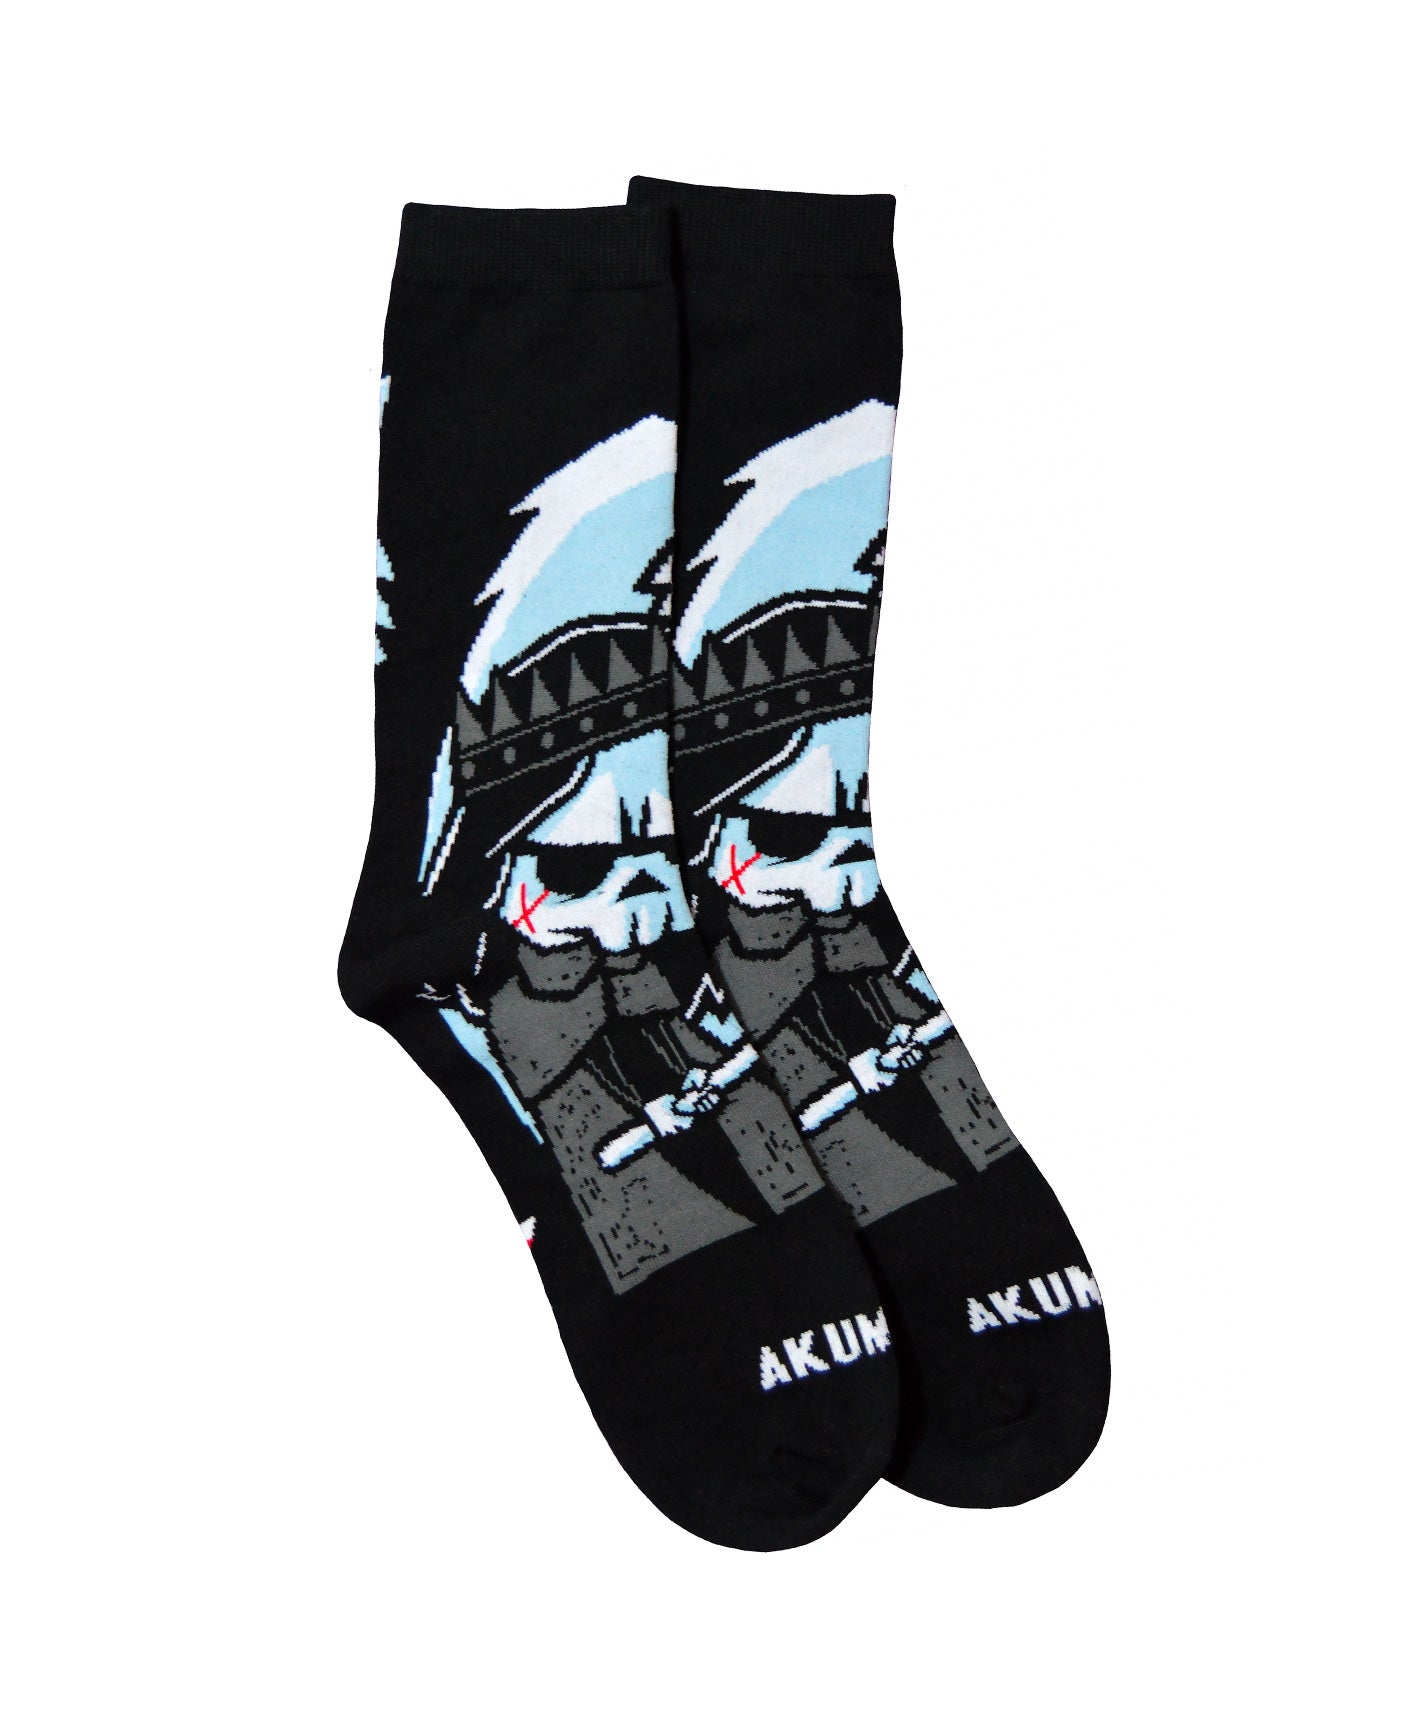 Akumu Ink Conquer Thy Enemy Unisex Socks, Accessories, Akumu ink, goth, emo